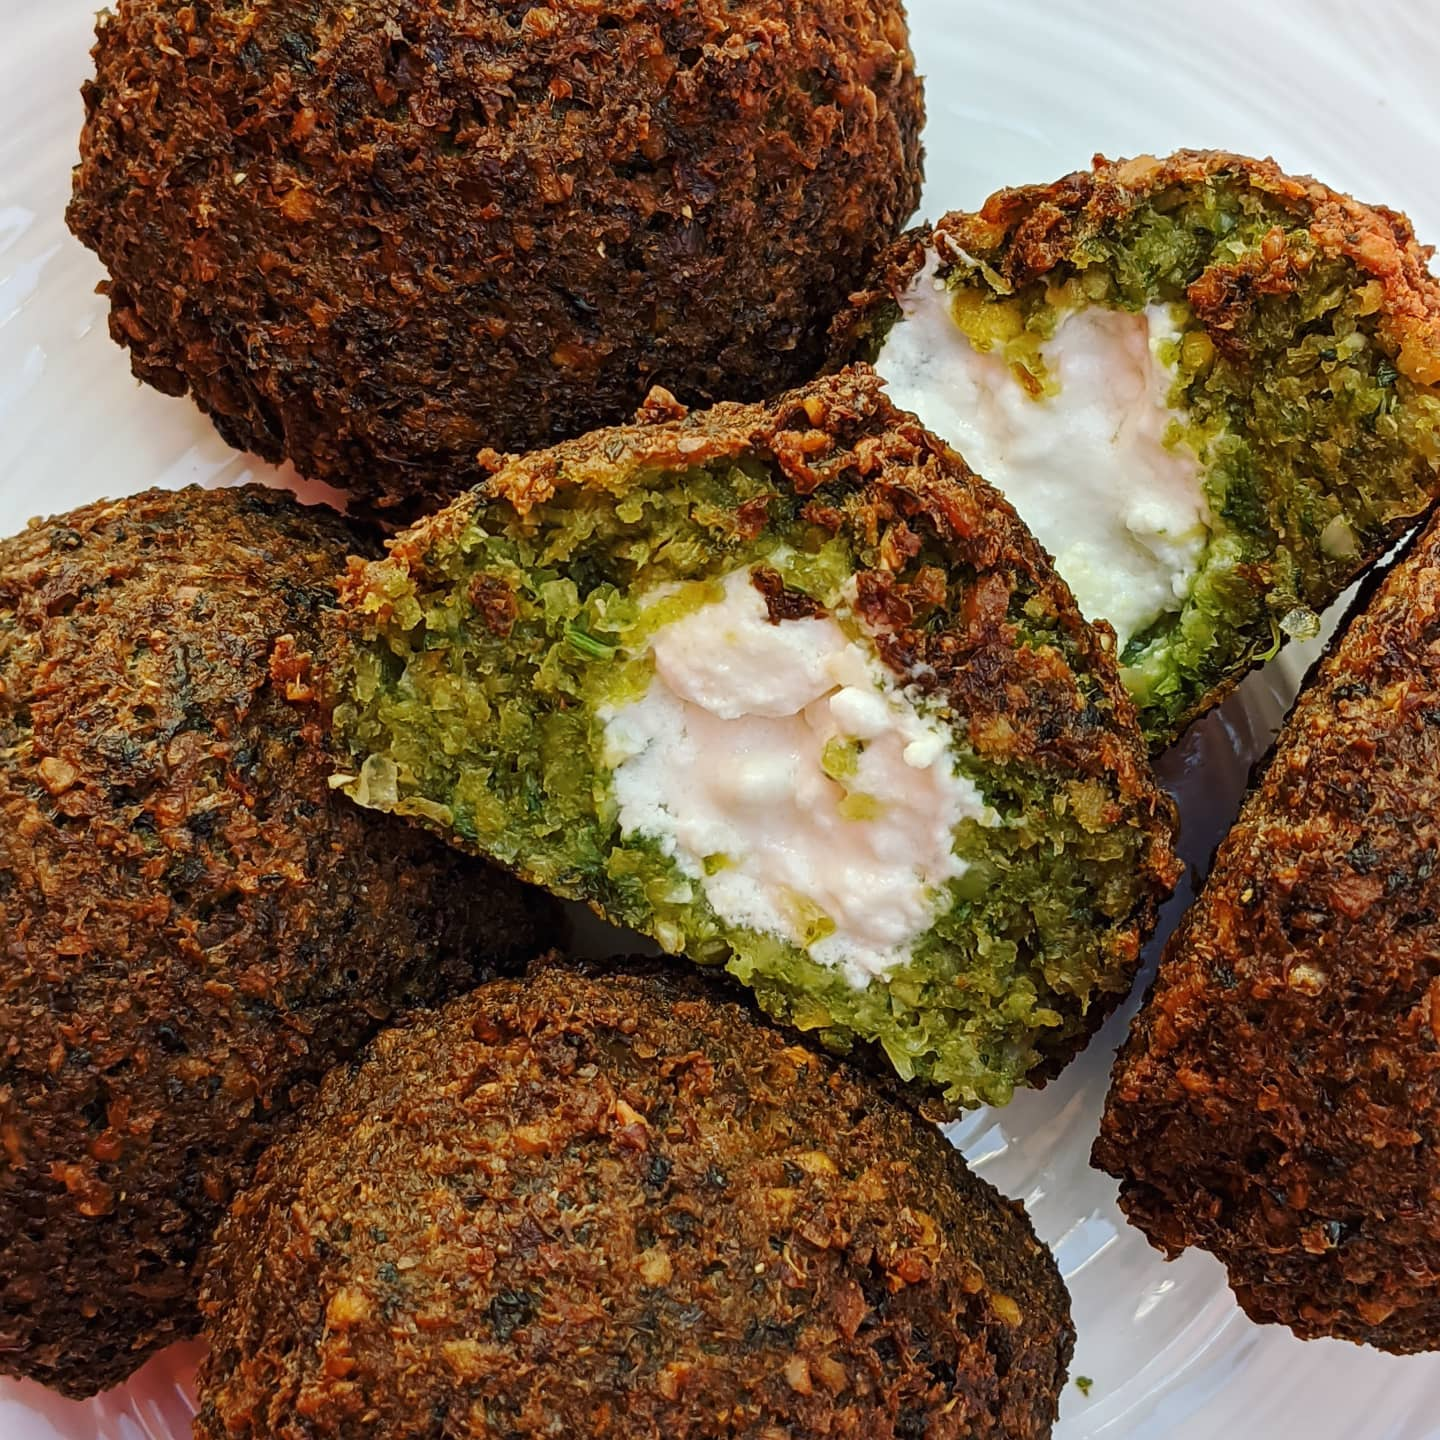 Cheese-stuffed falafel from Pomella.